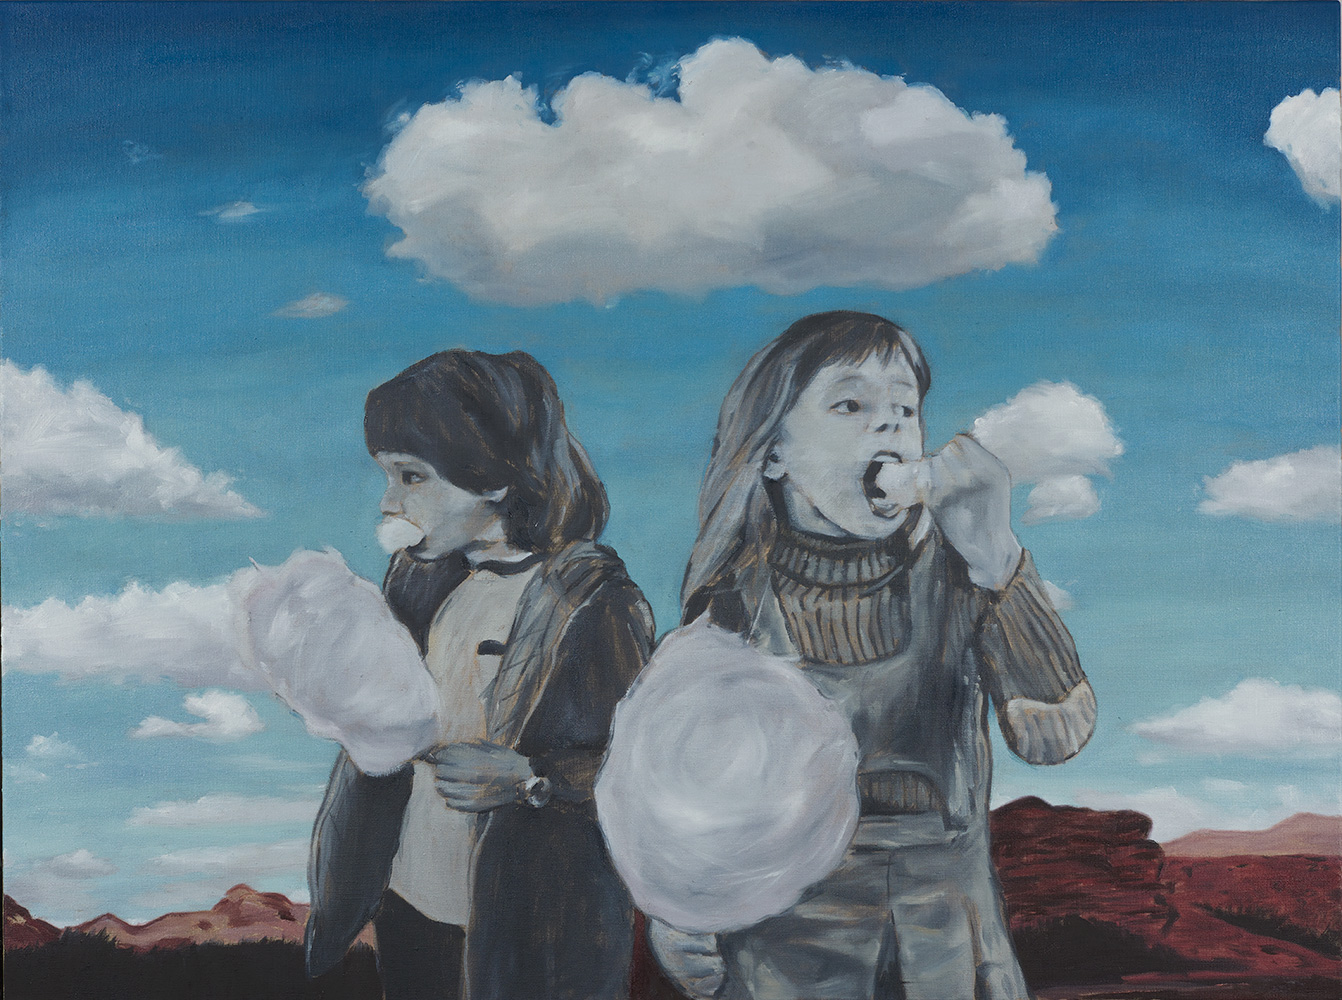 The Cloud Eaters